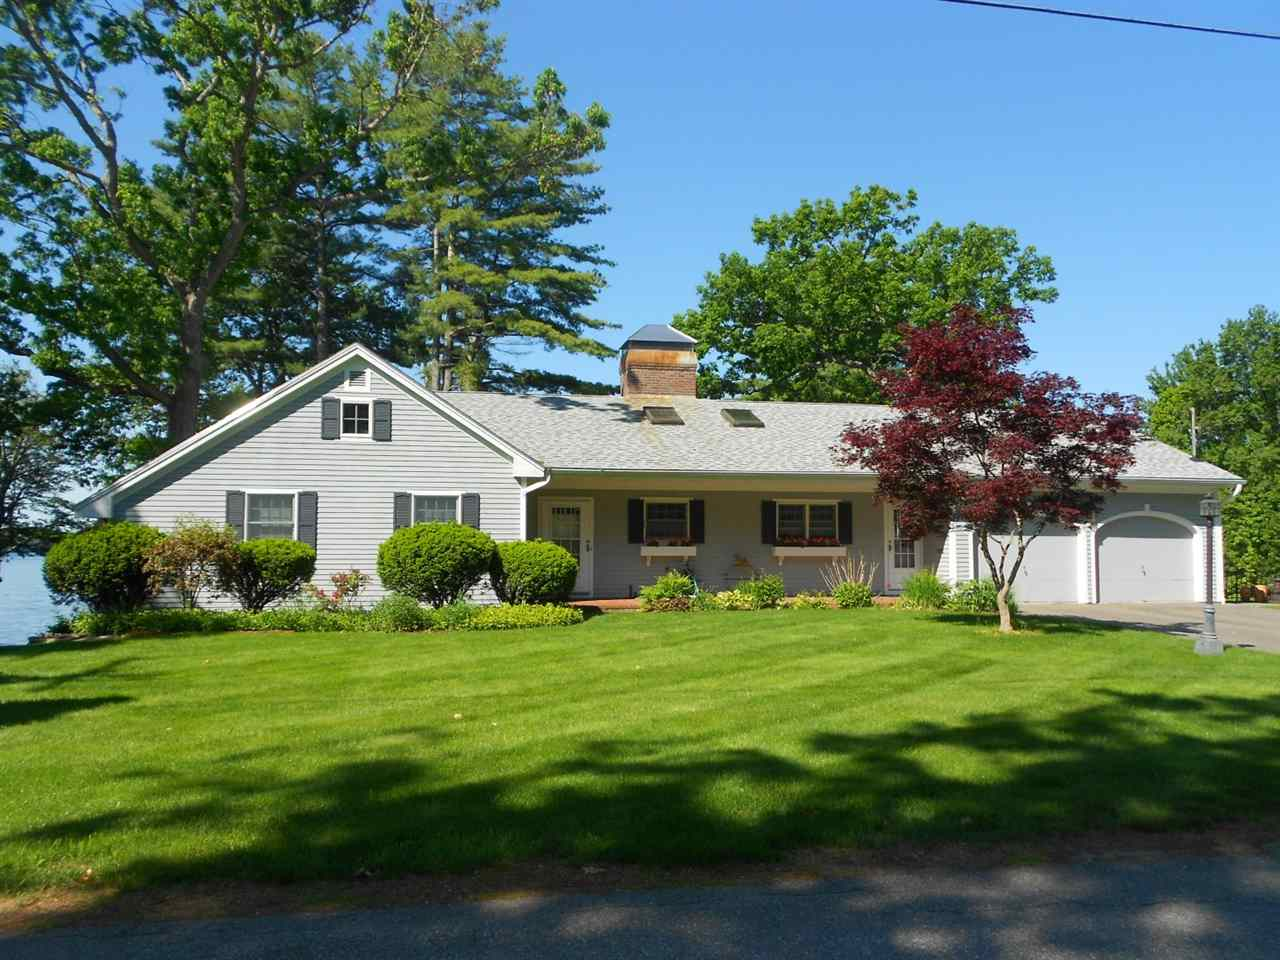 Lake Winnisquam waterfront home for sale in Laconia